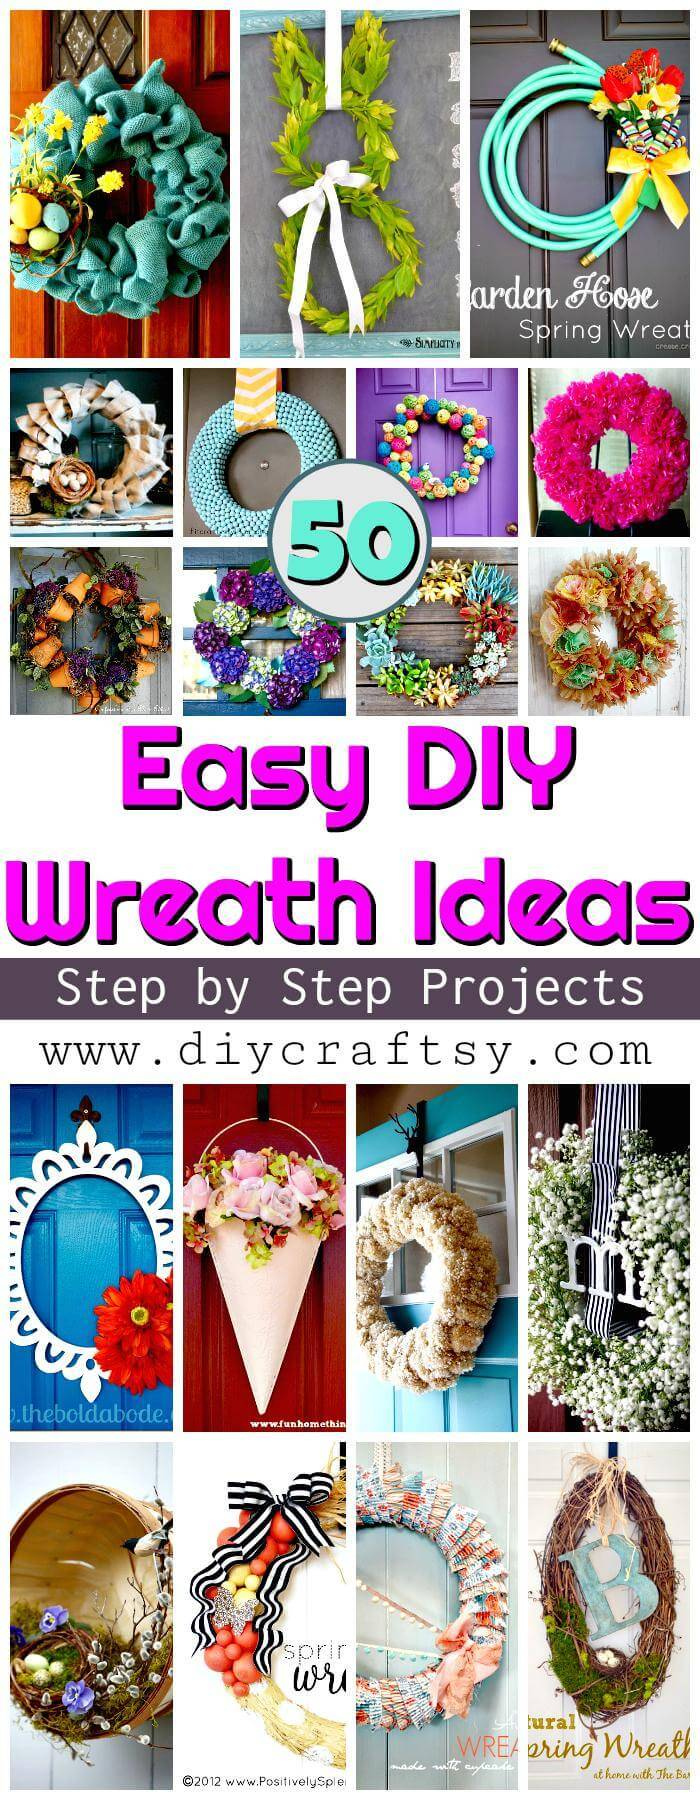 DIY Wreath Projects - 50 Easy DIY Wreath Ideas - DIY Wreath, DIY Home Decor, DIY Projects, DIY Crafts